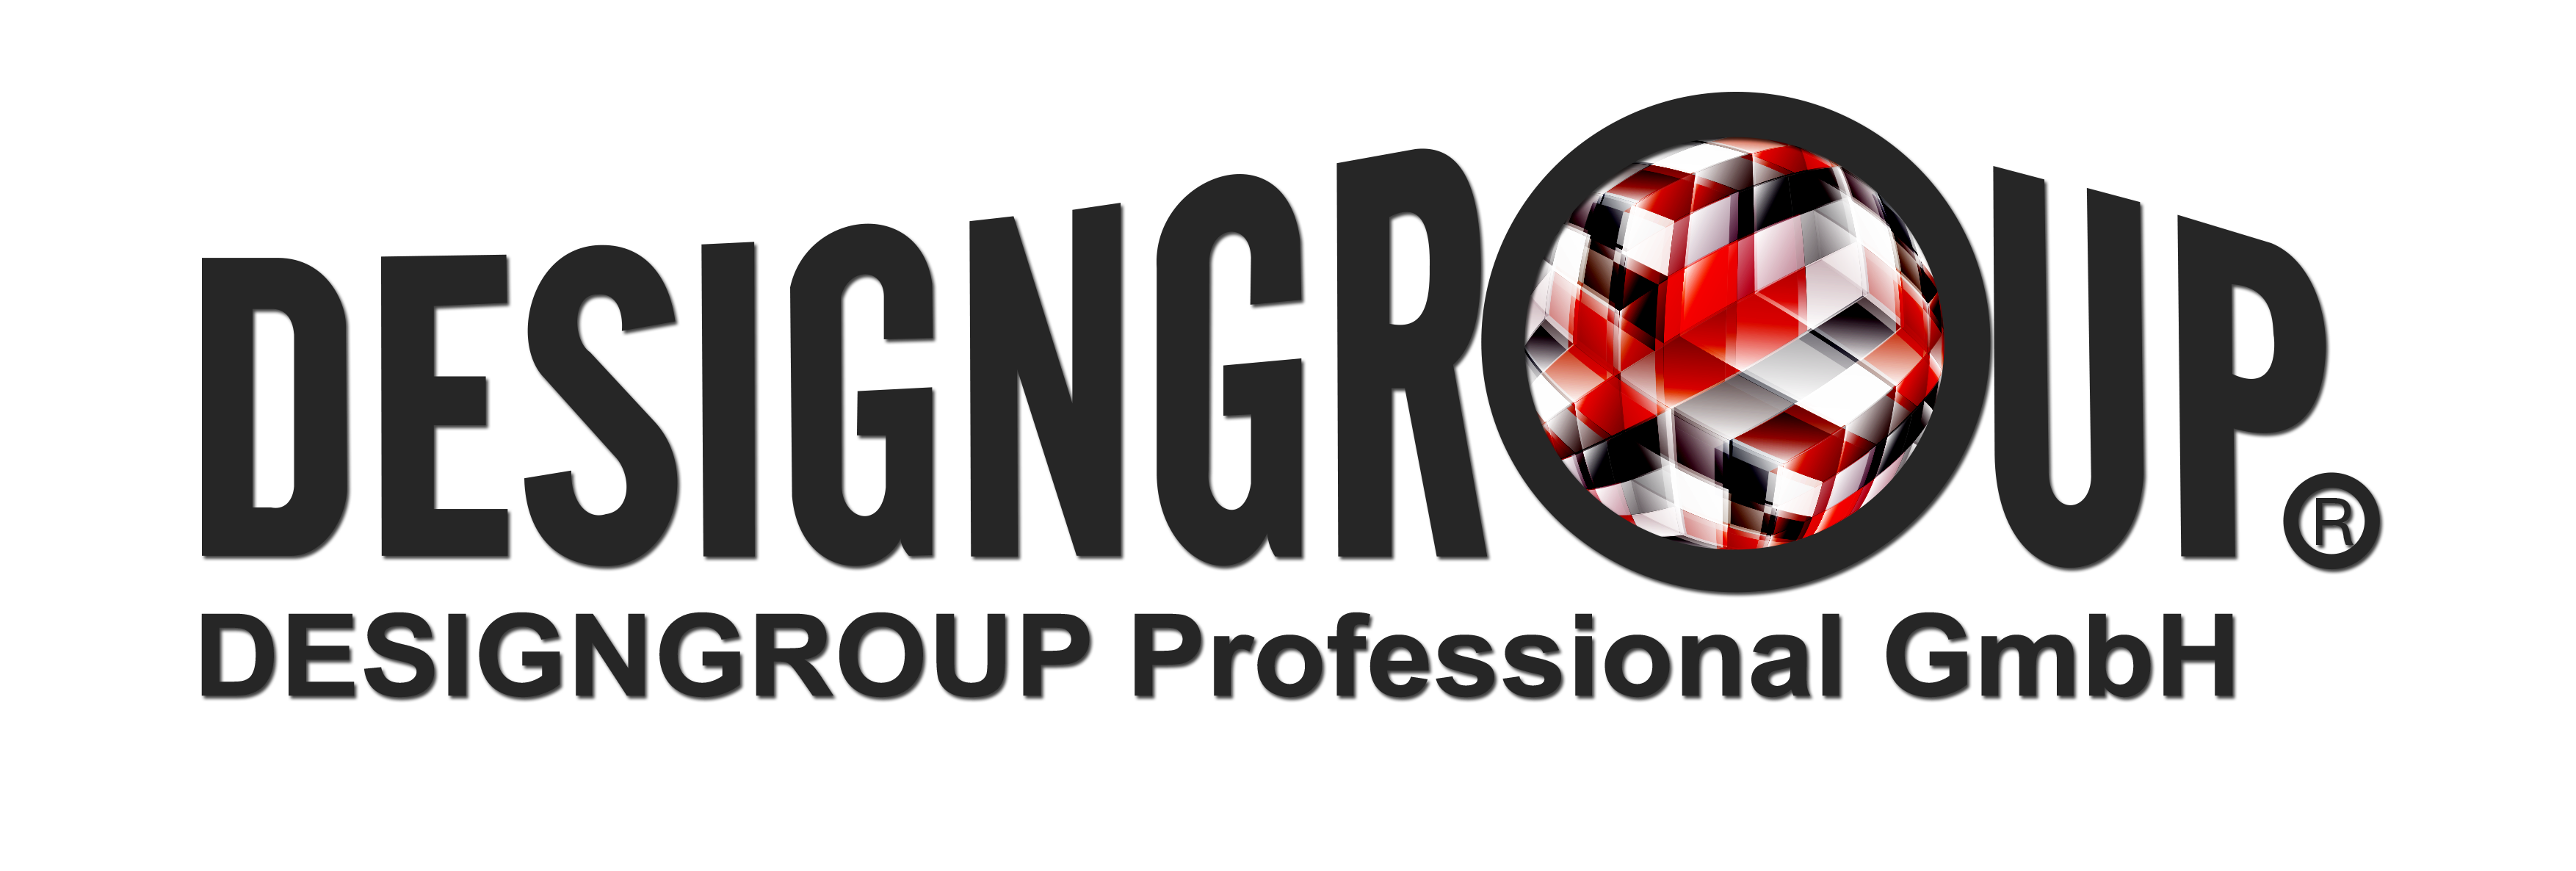 DesignGroup Professional GmbH